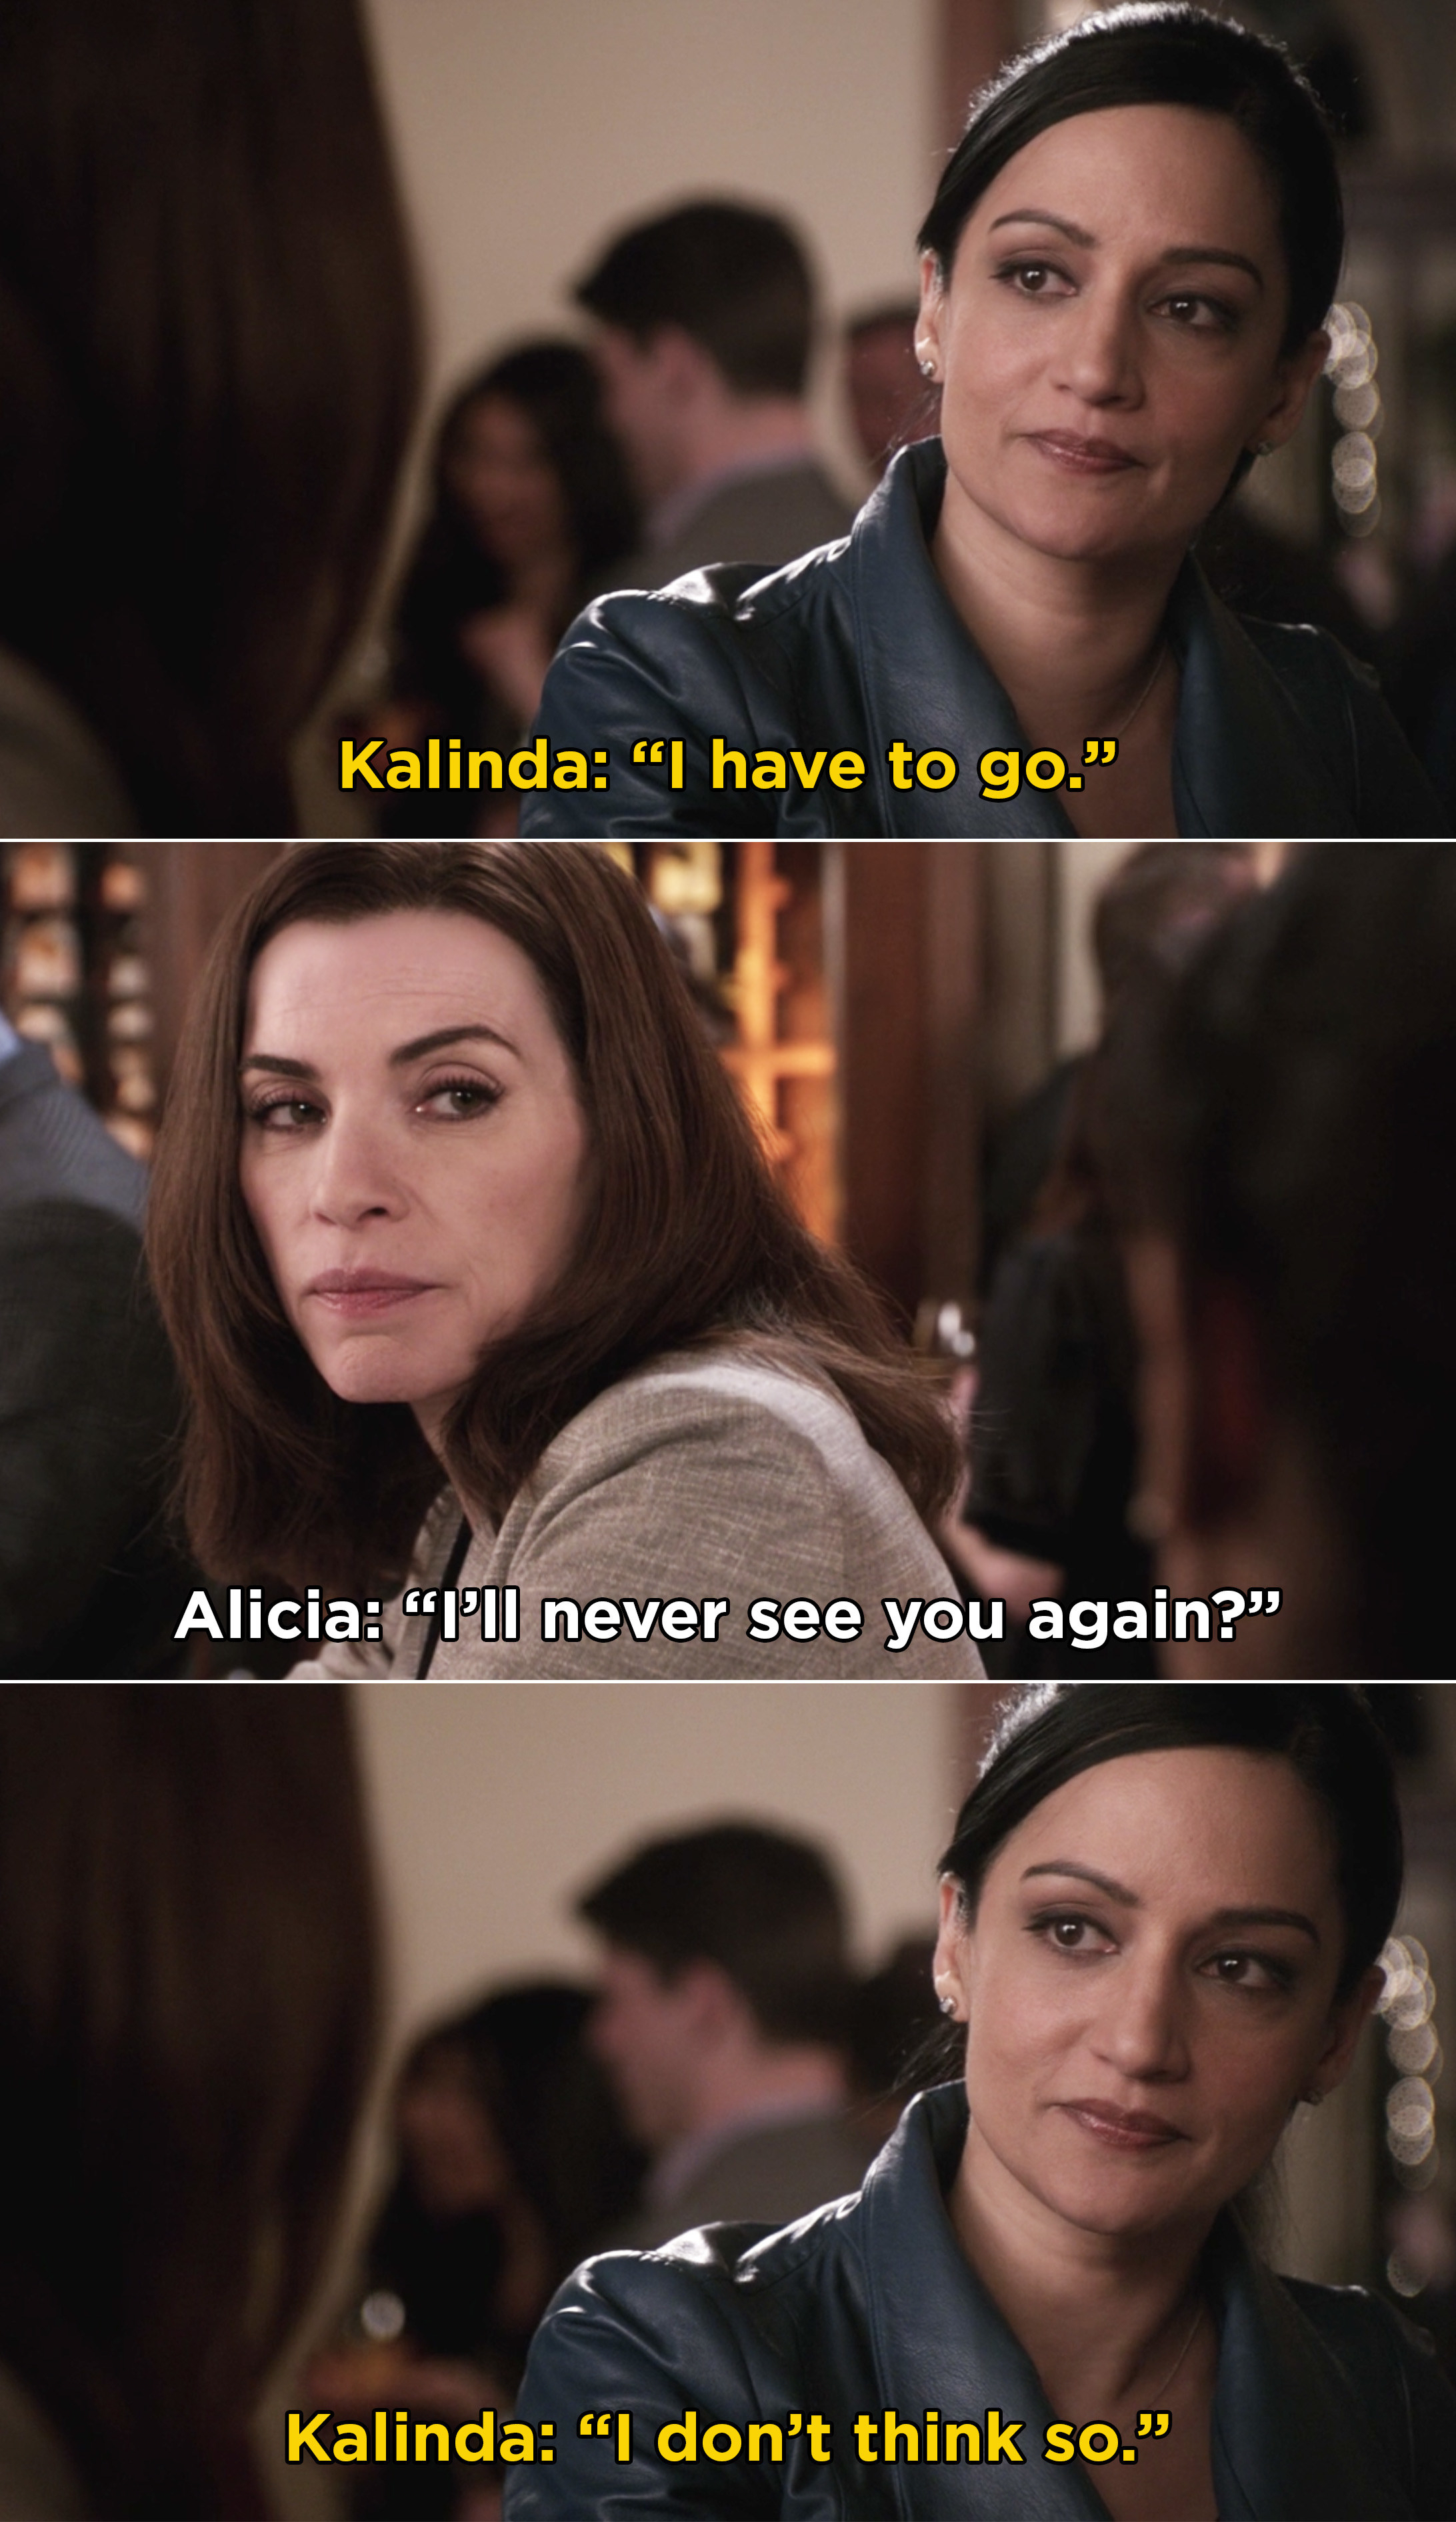 Kalinda telling Alicia that she will never see her again